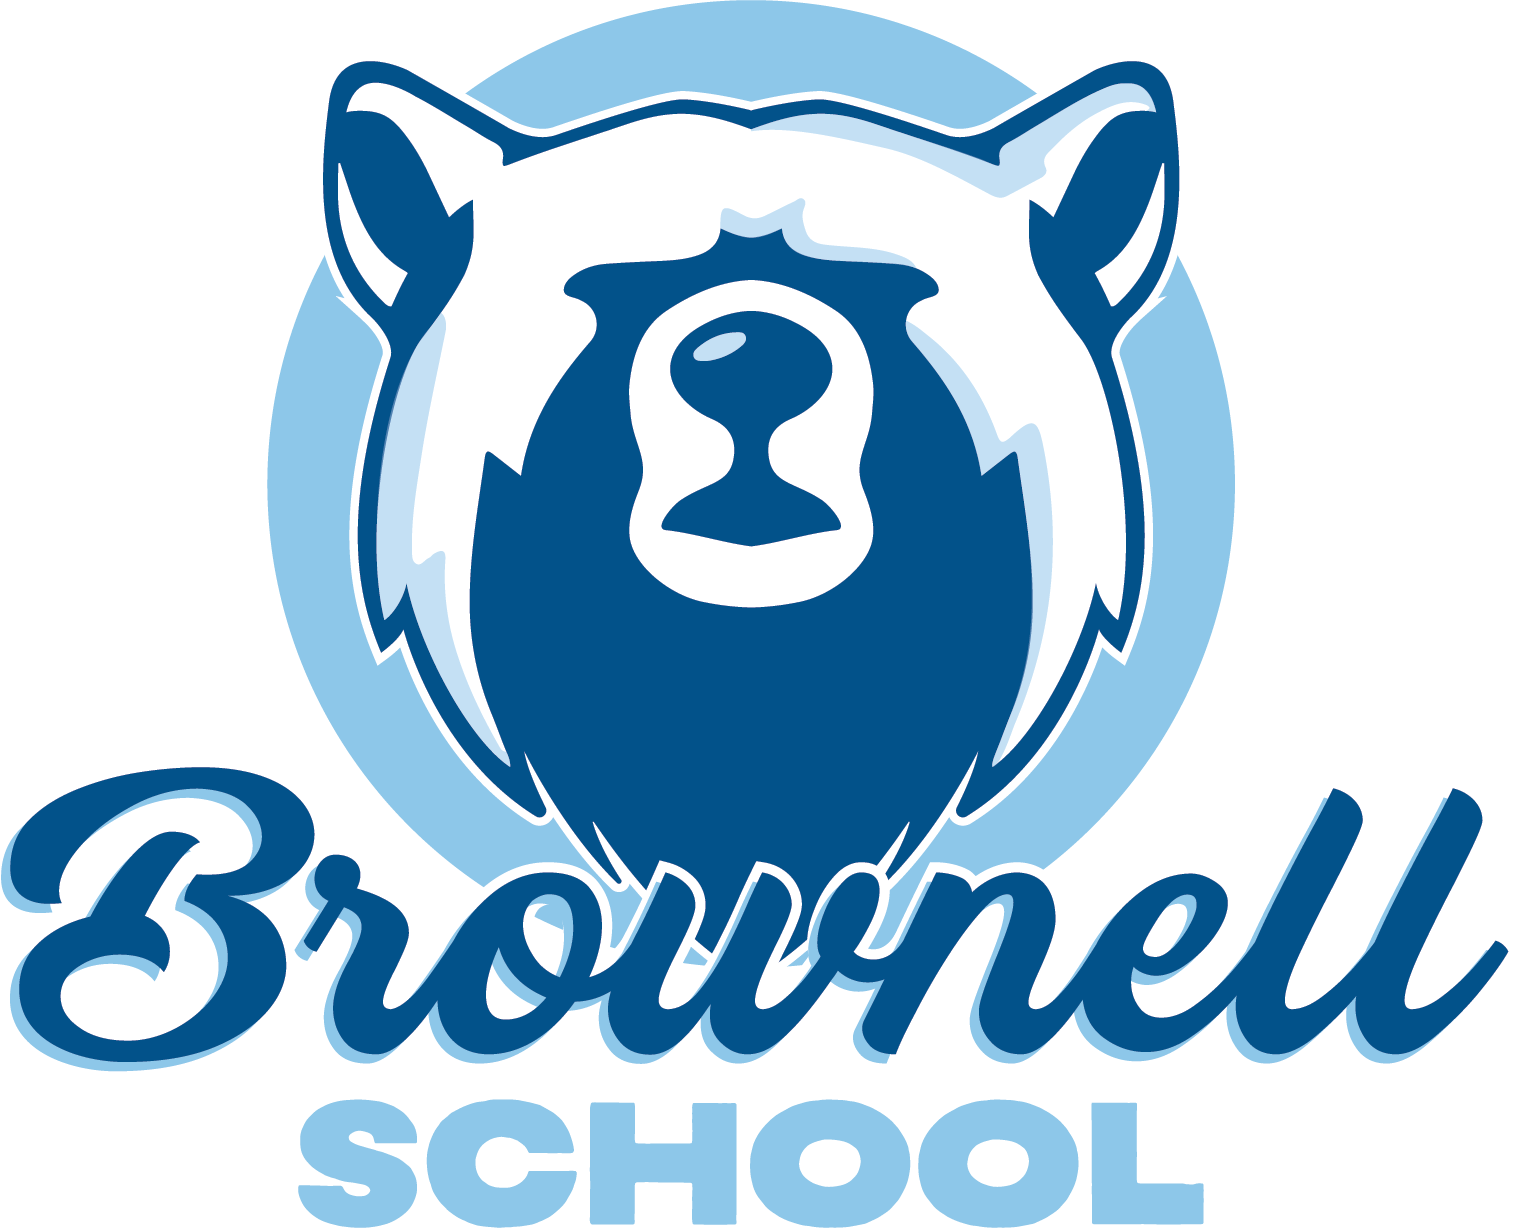 Brownell School logo